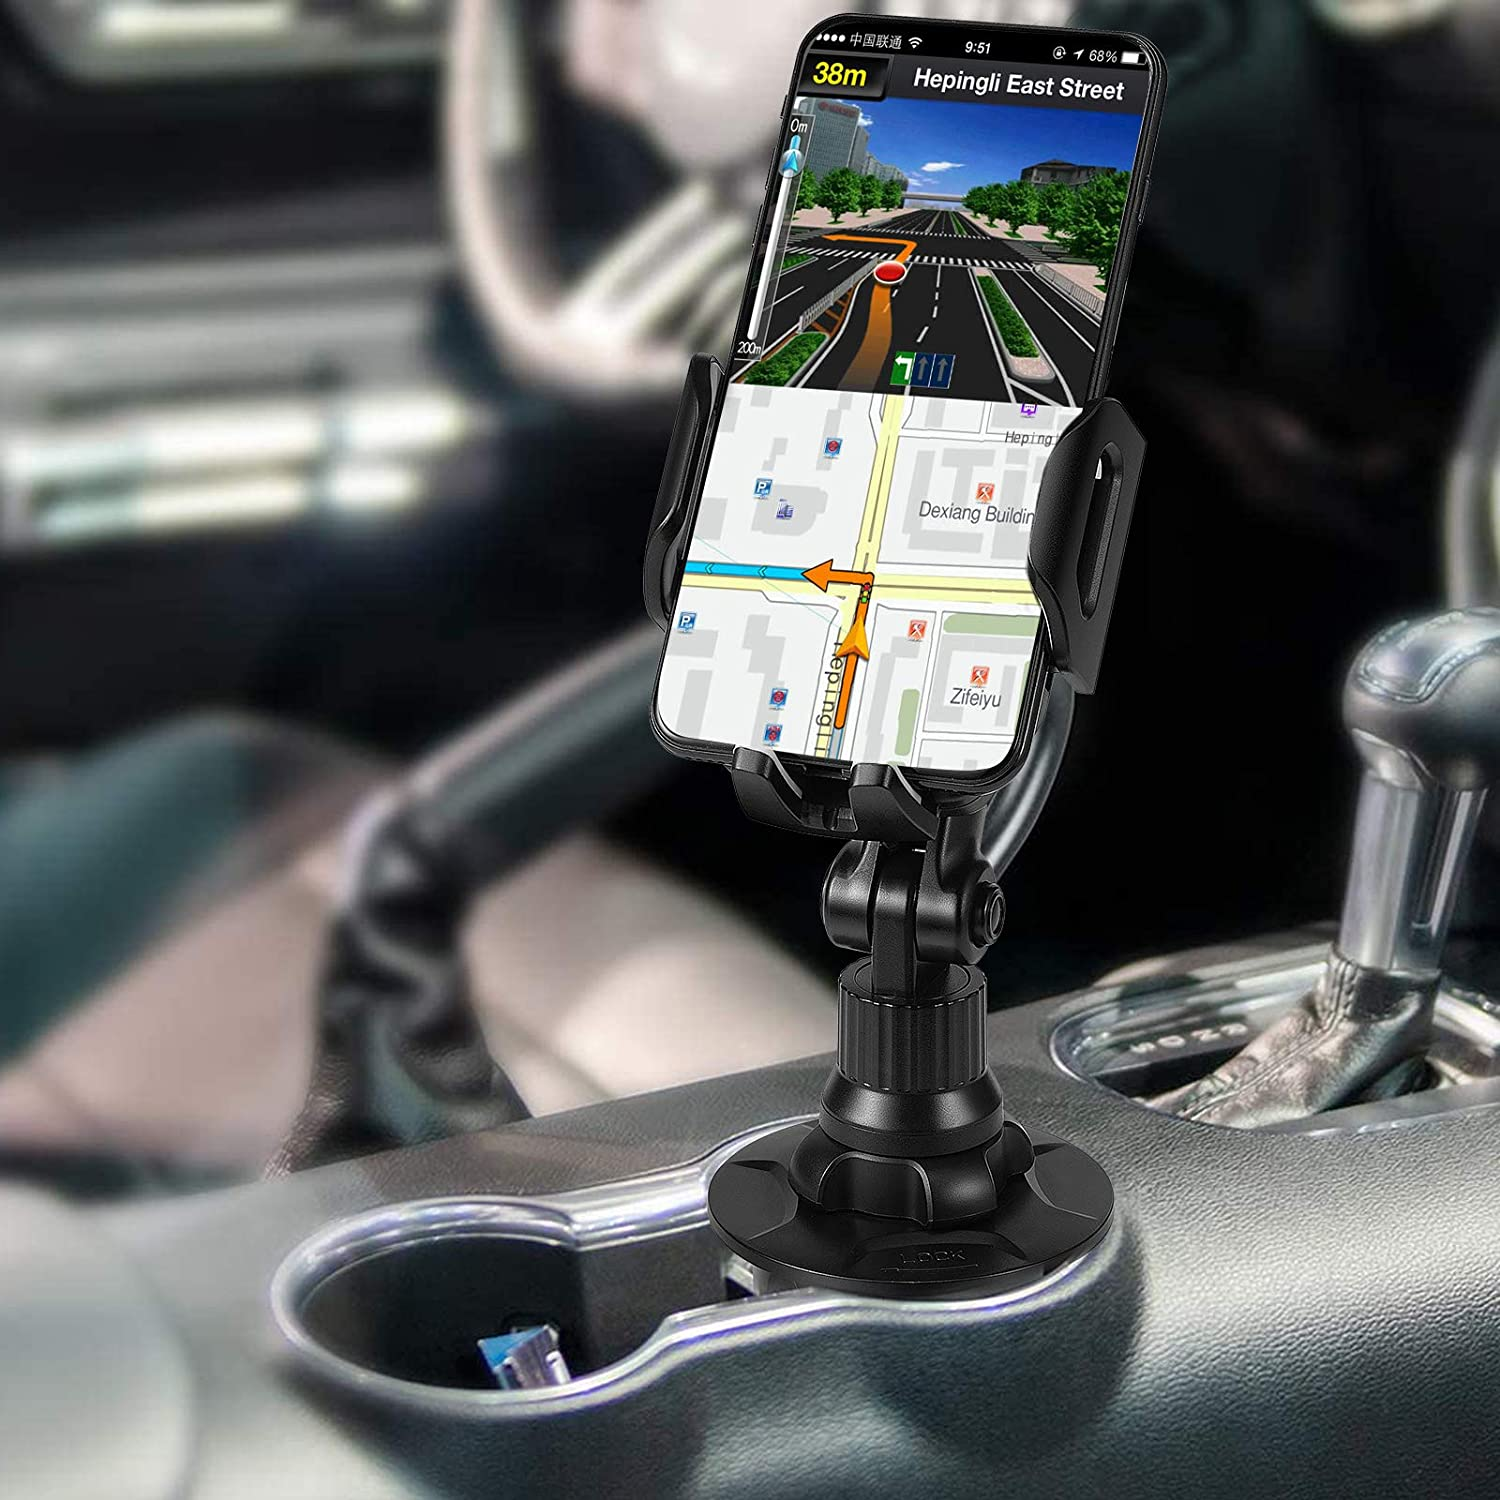 YvchuL Car Cup Phone Holder Upgrade Cell Phone Cupholder Cradle Mount Universal Phone Holder for Car 360/° with Extendable and Adjustable Arm